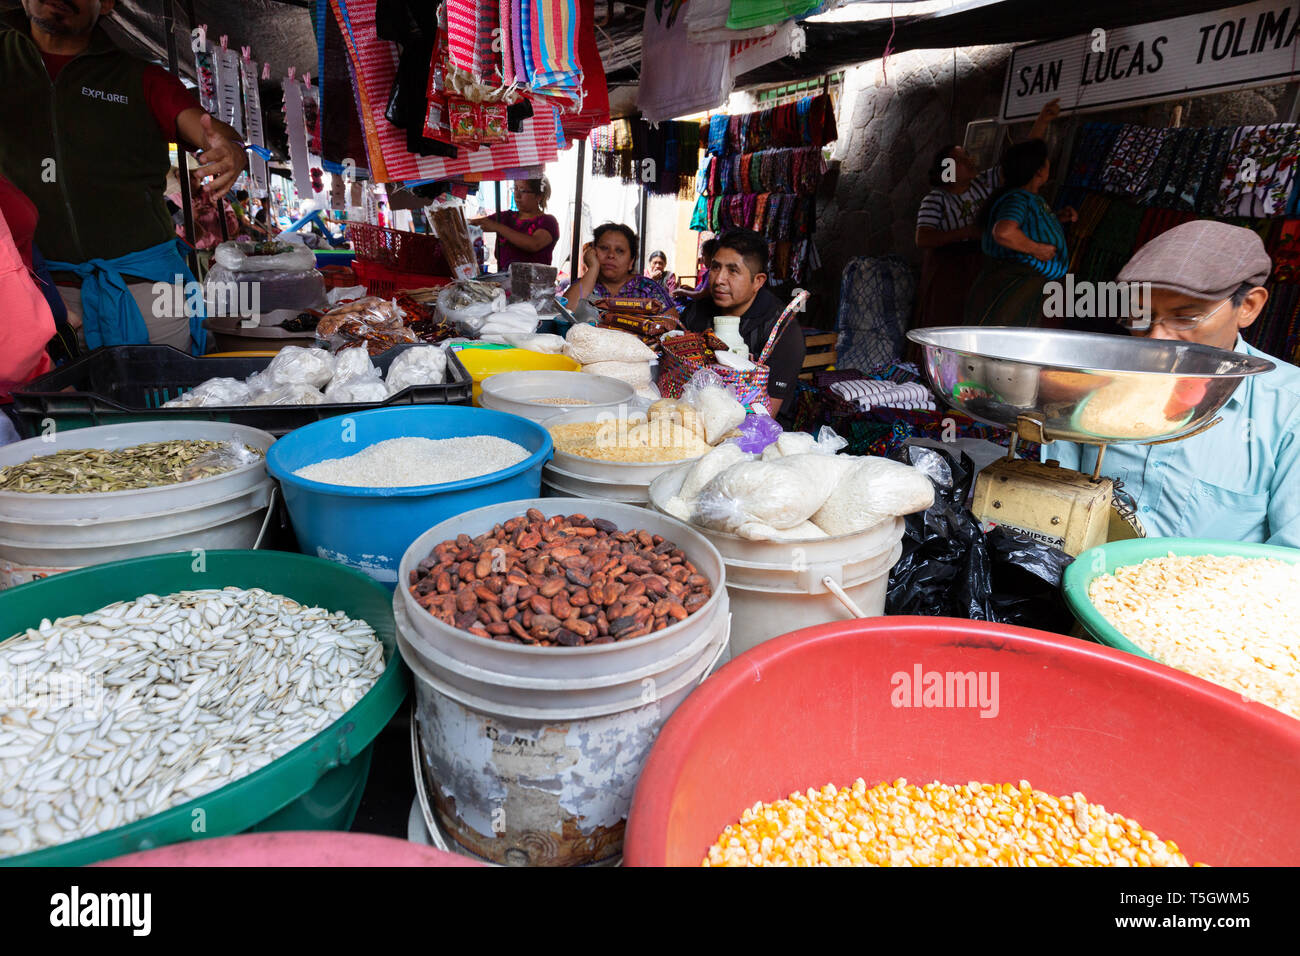 Guatemala Central America - market traders selling food from their stall in the town market, Santiago Atitlan, Guatemala, Latin America - Stock Image